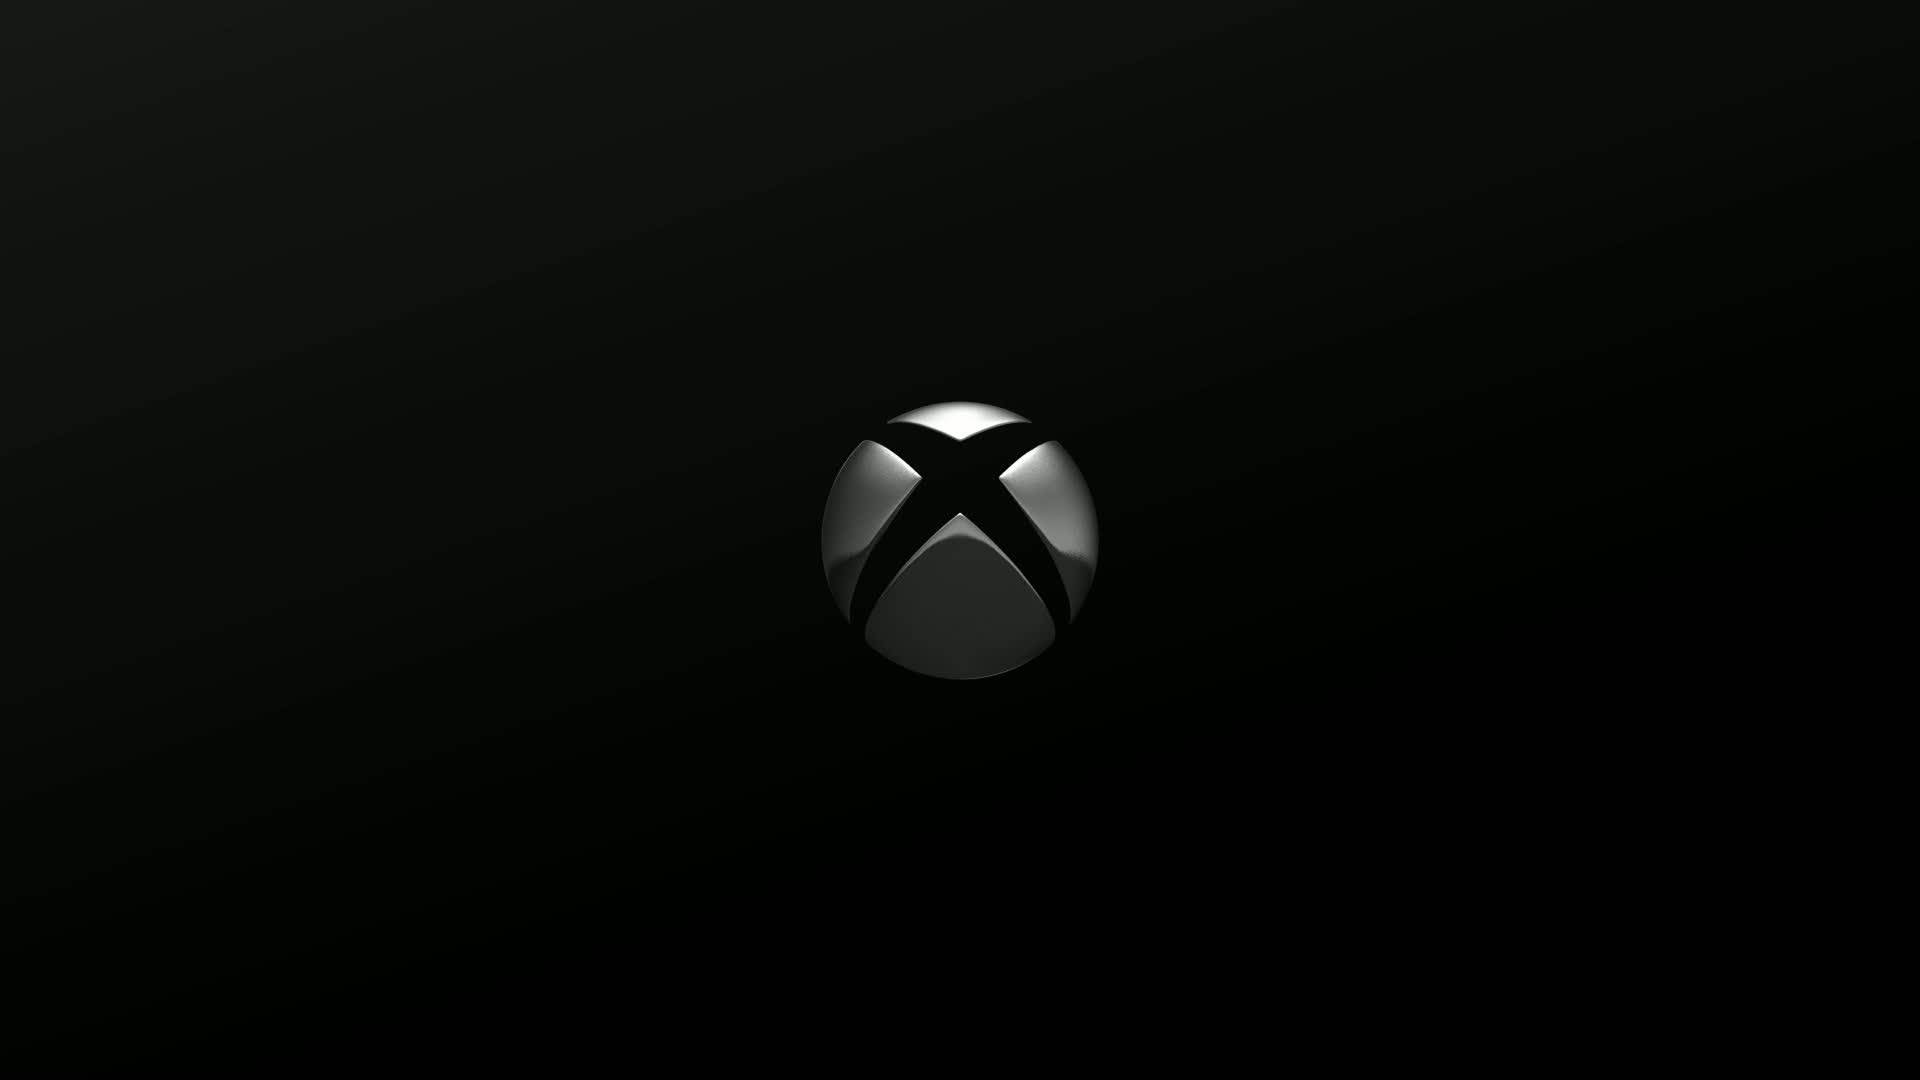 Xbox One Wallpapers for Console - WallpaperSafari Xbox One Game Wallpaper